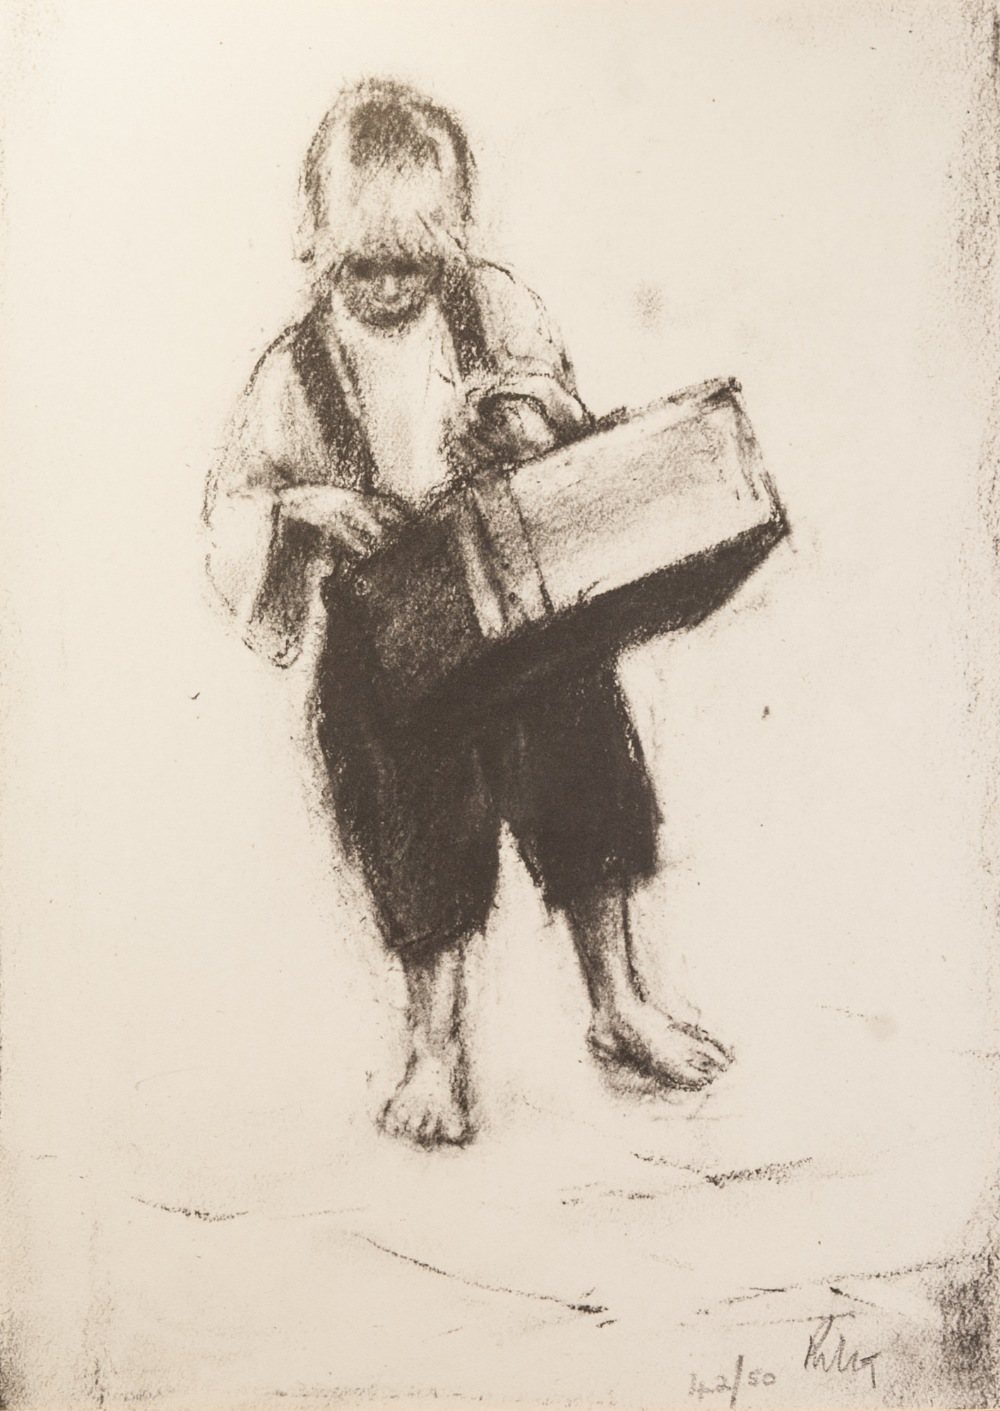 Lot 133 - •HAROLD RILEY (1934) ARTIST SIGNED LIMITED EDITION PRINT OF A CHARCOAL DRAWING Barefoot boy with a